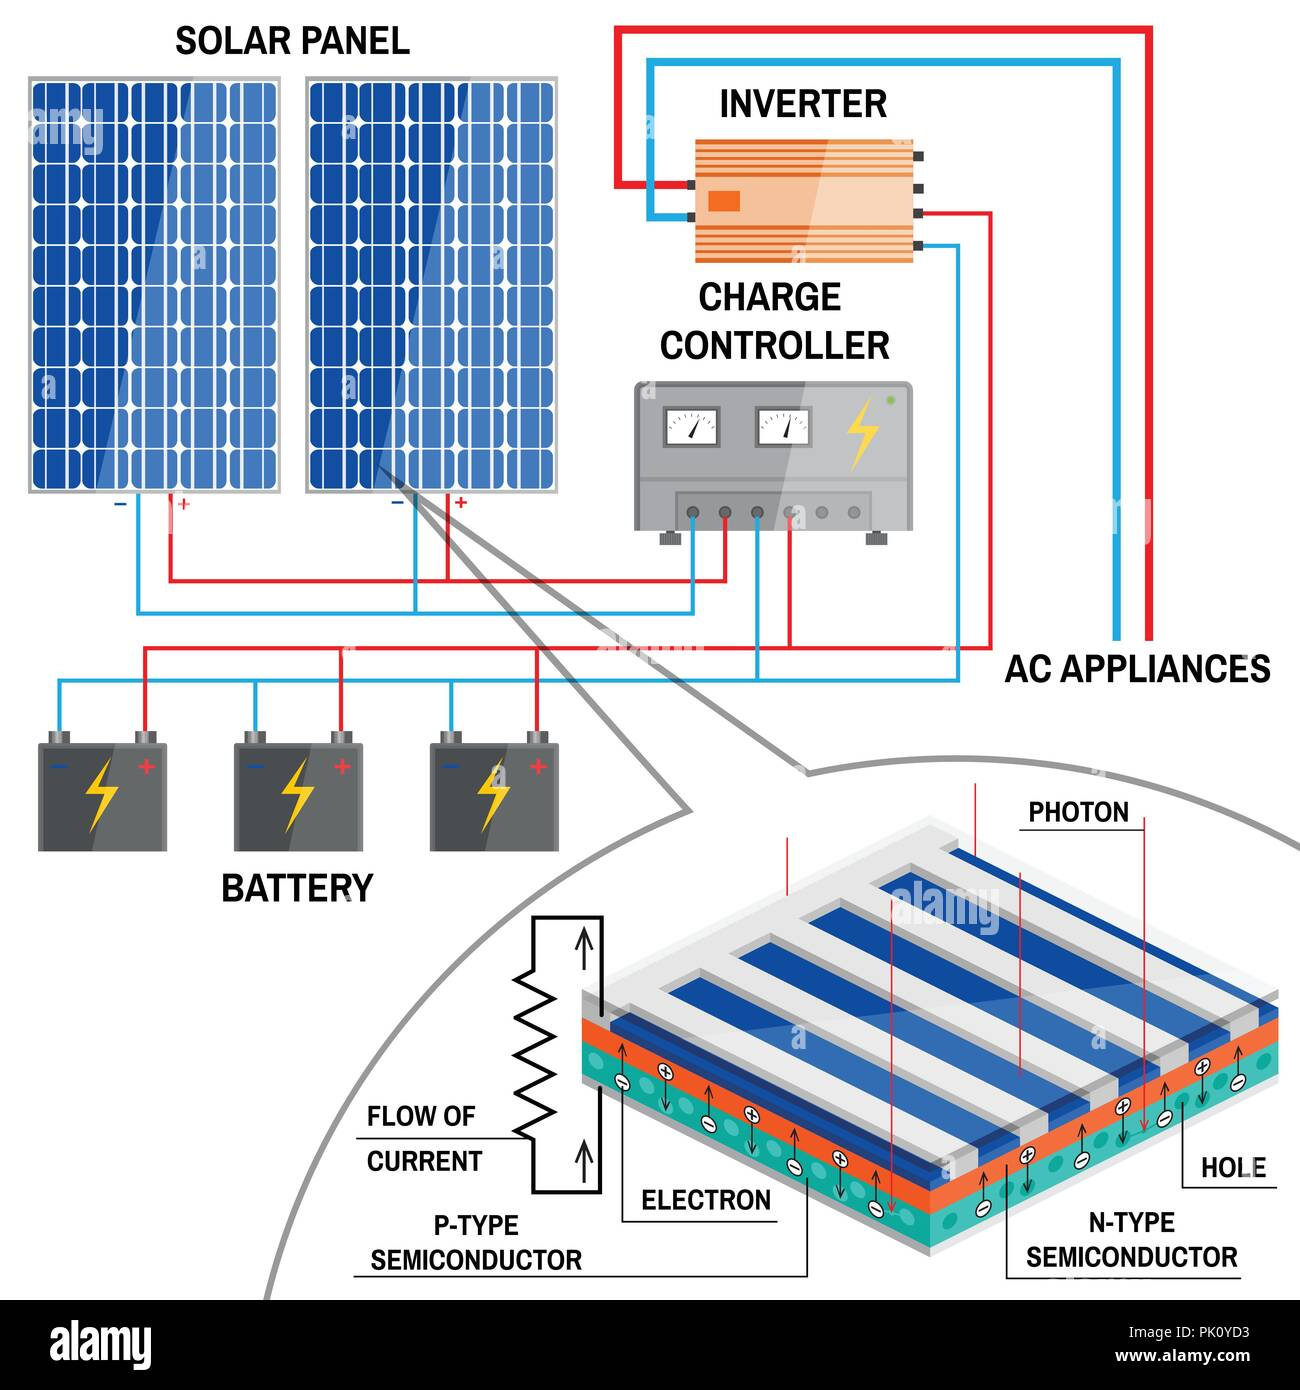 Solar panel system for home. Renewable energy concept. Simplified diagram of an off-grid system. Photovoltaic panels, battery, charge controller and i - Stock Vector